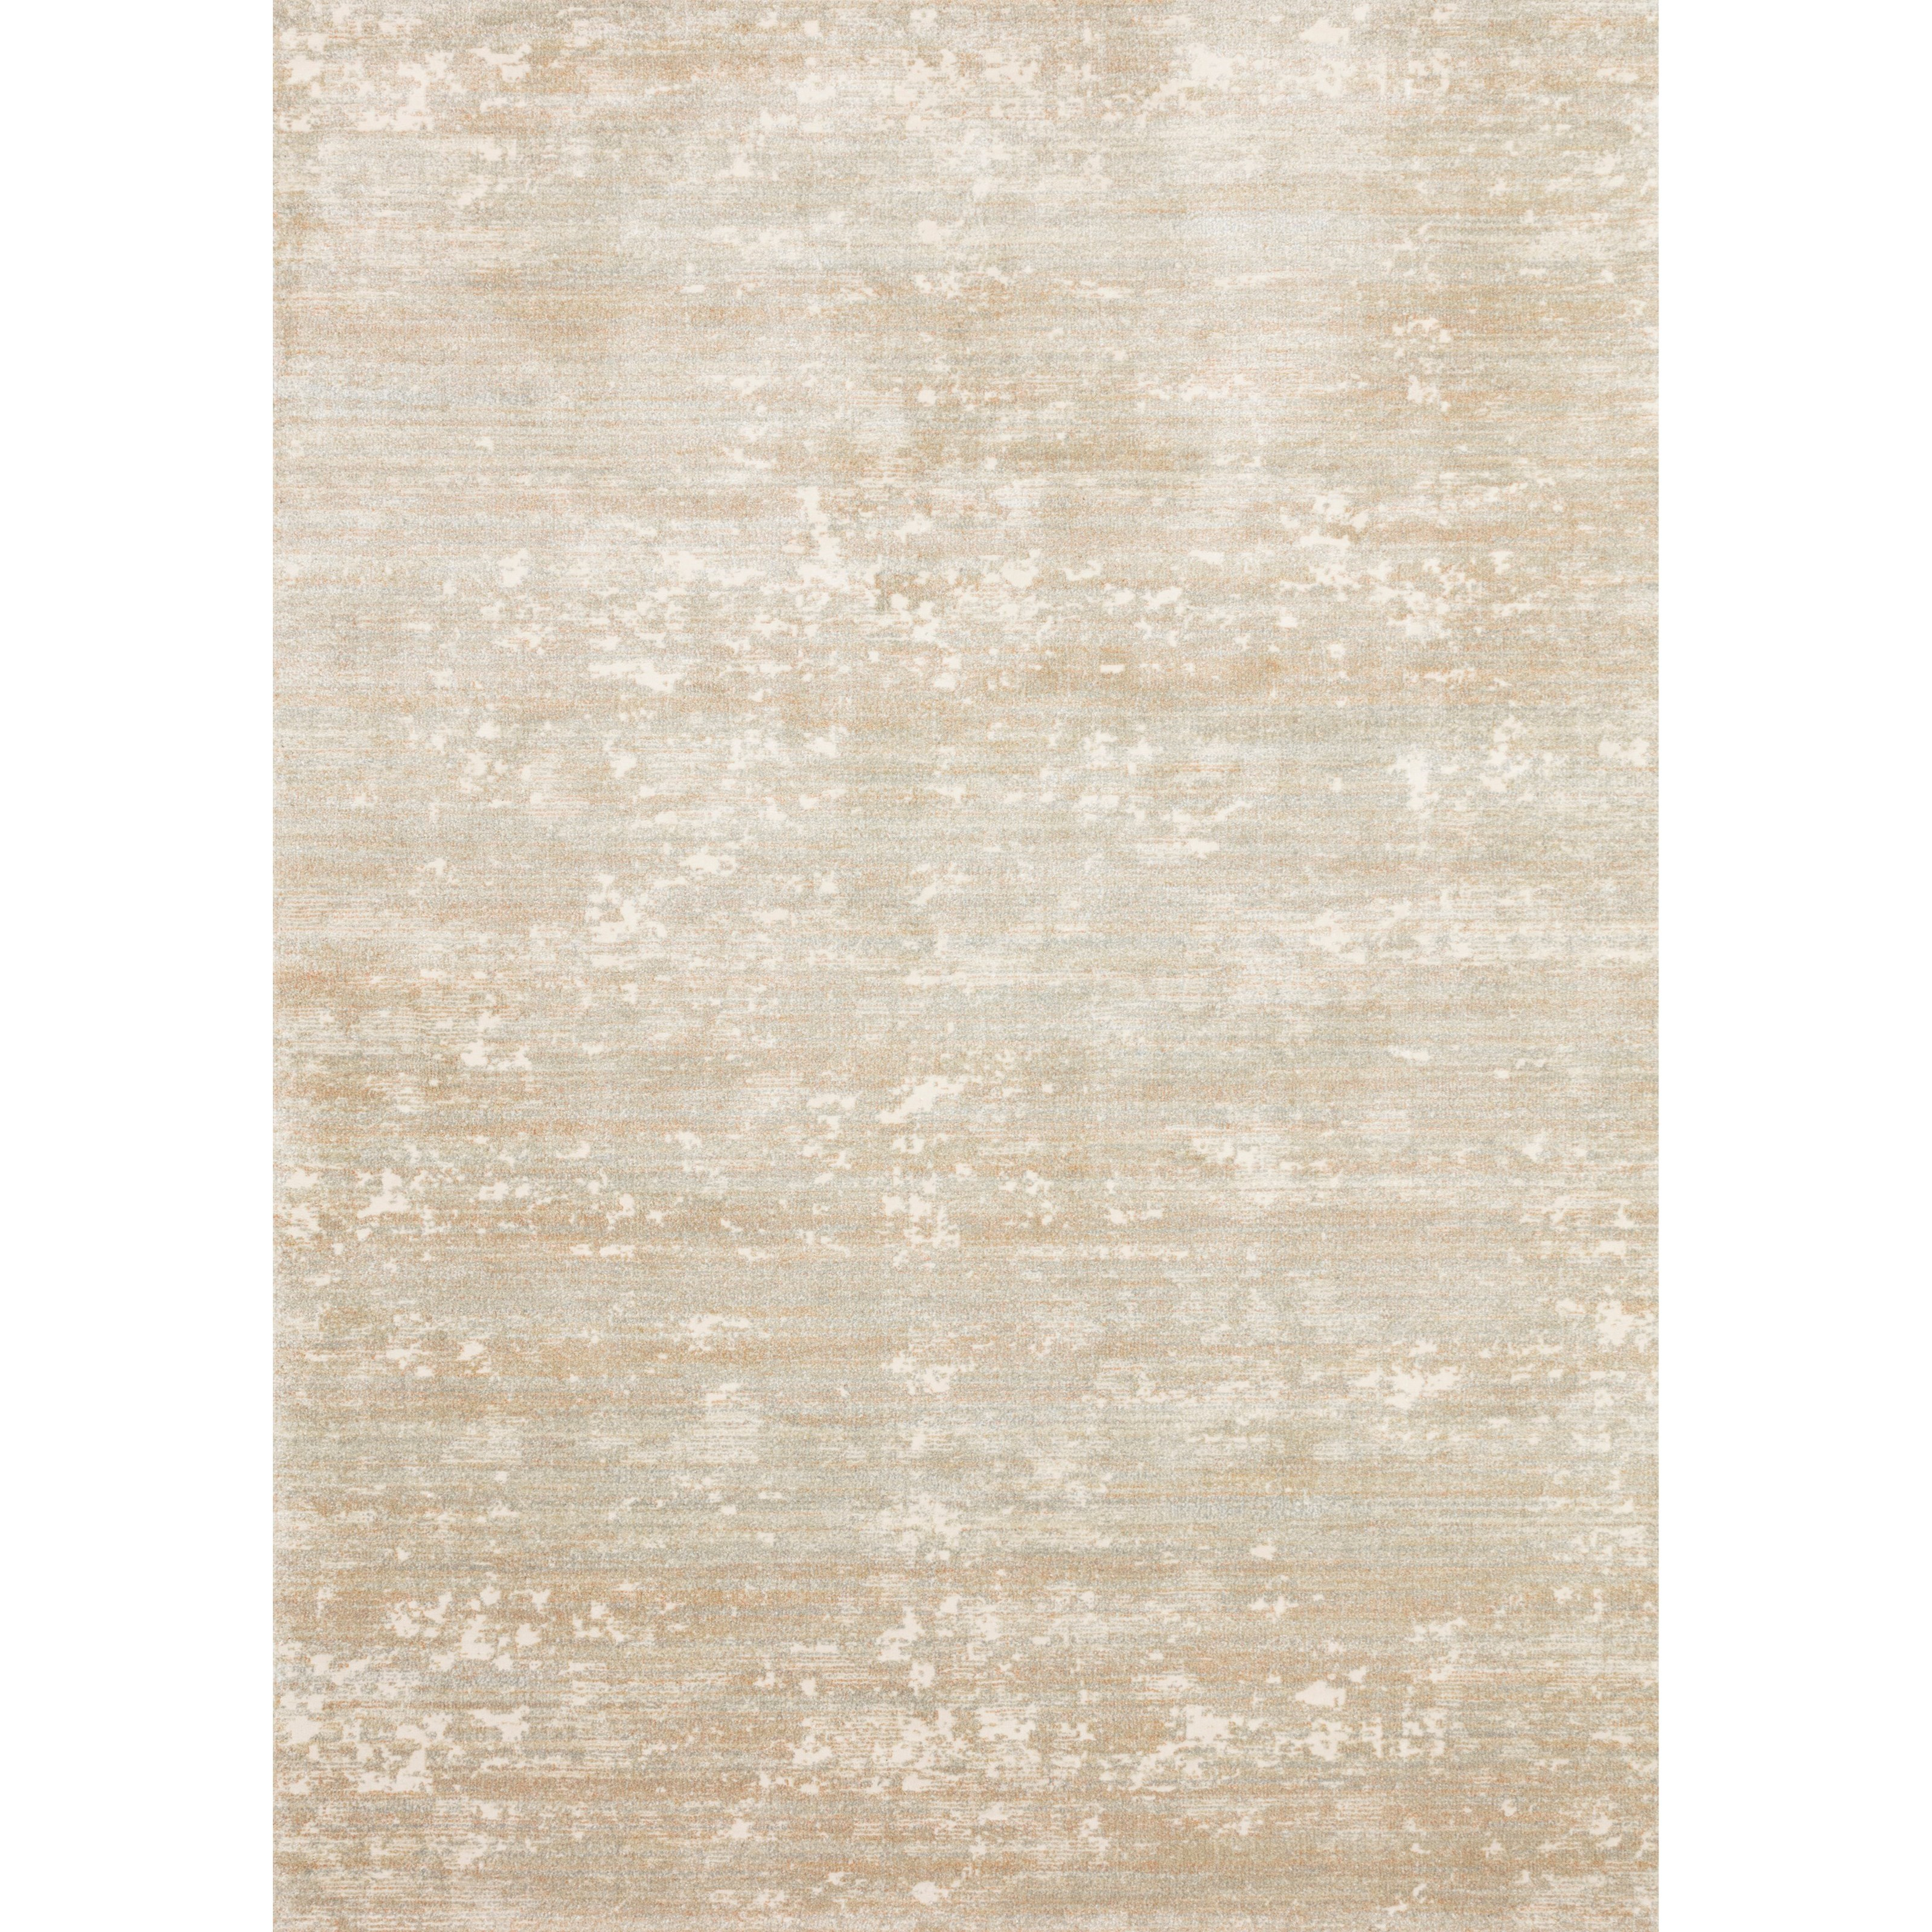 """Augustus 7'10"""" x 10'10"""" Sunset / Mist Rug by Loloi Rugs at Virginia Furniture Market"""